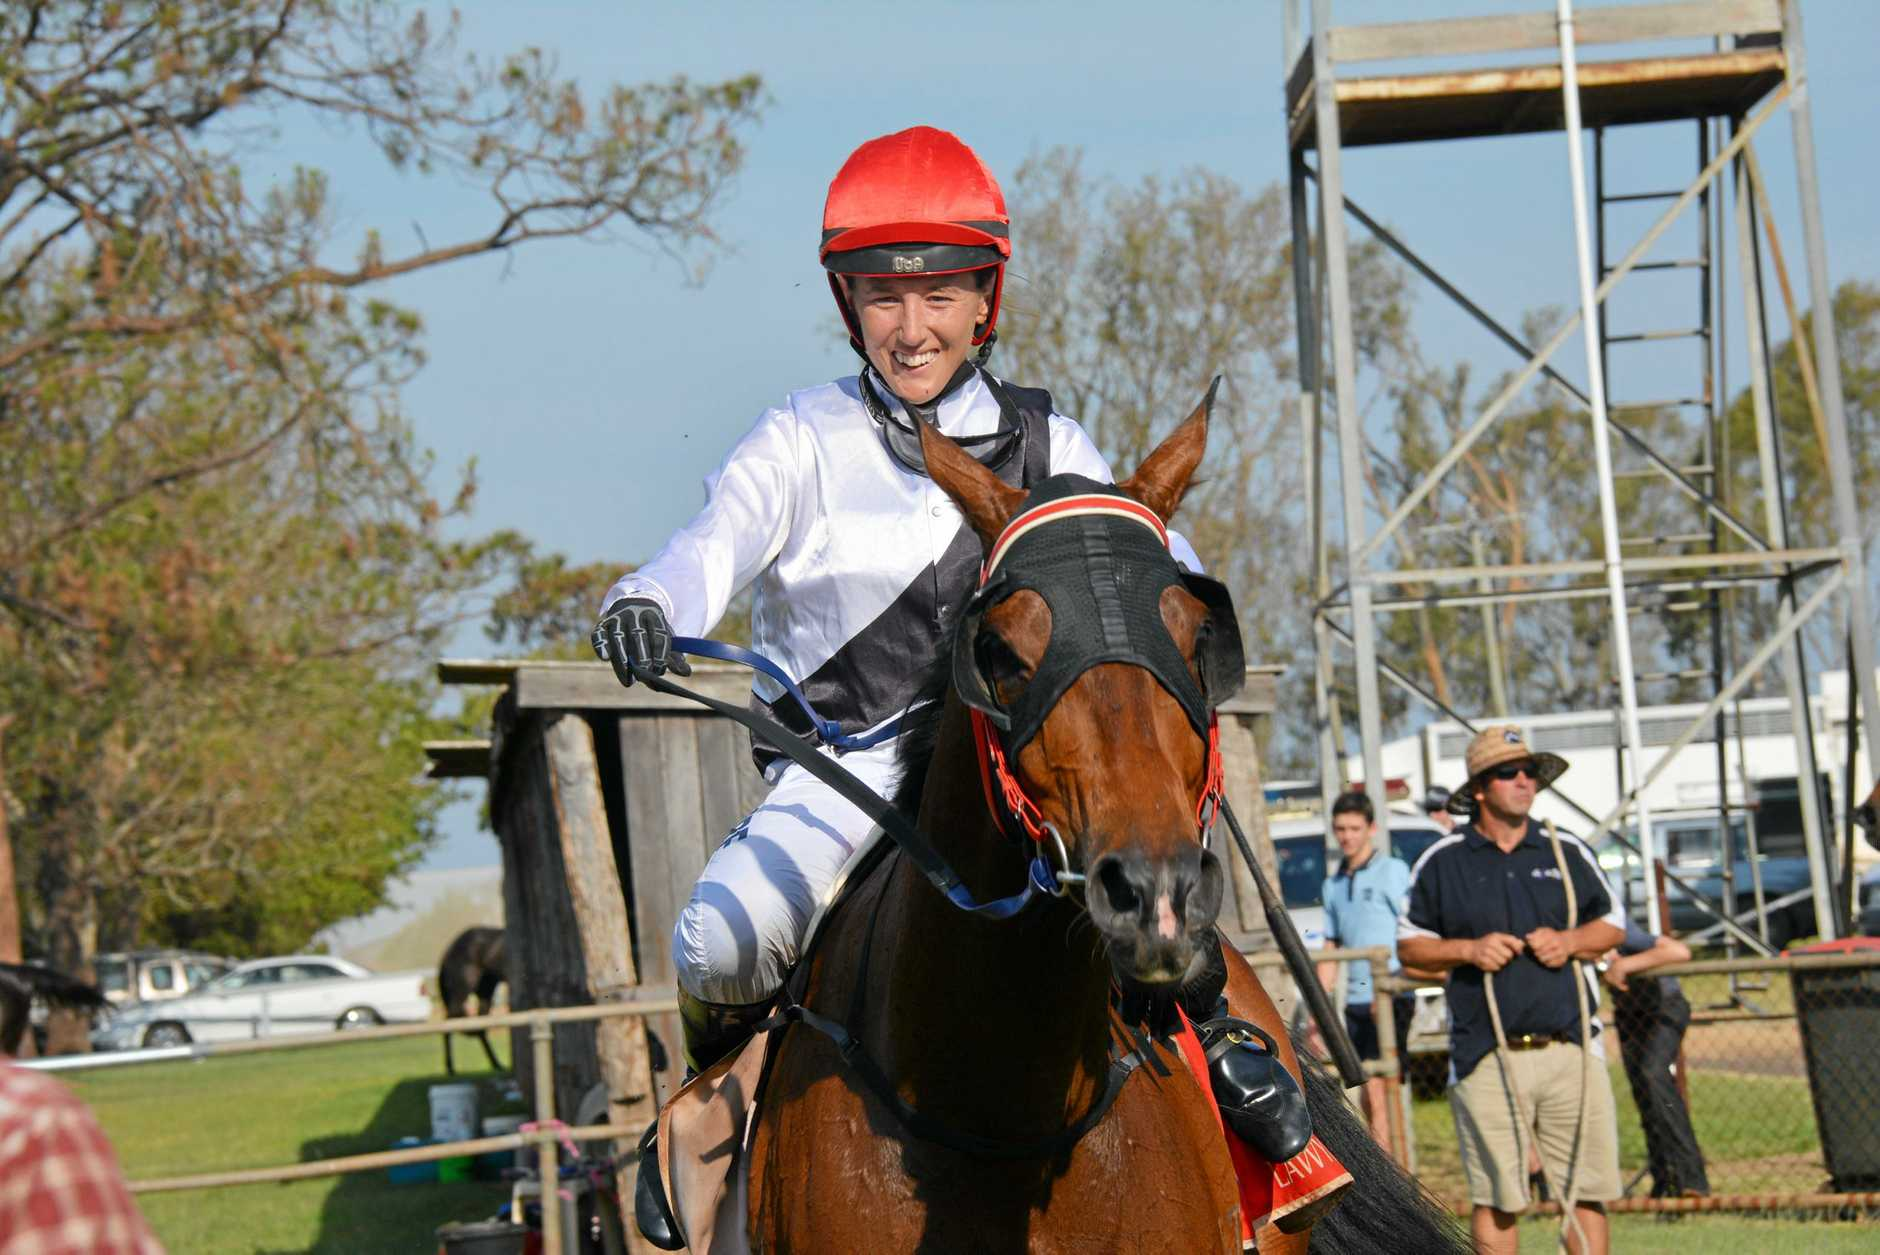 Hannah Phillips on Kumbia Cup winning horse Still the Same at the Kumbia Rcaes.